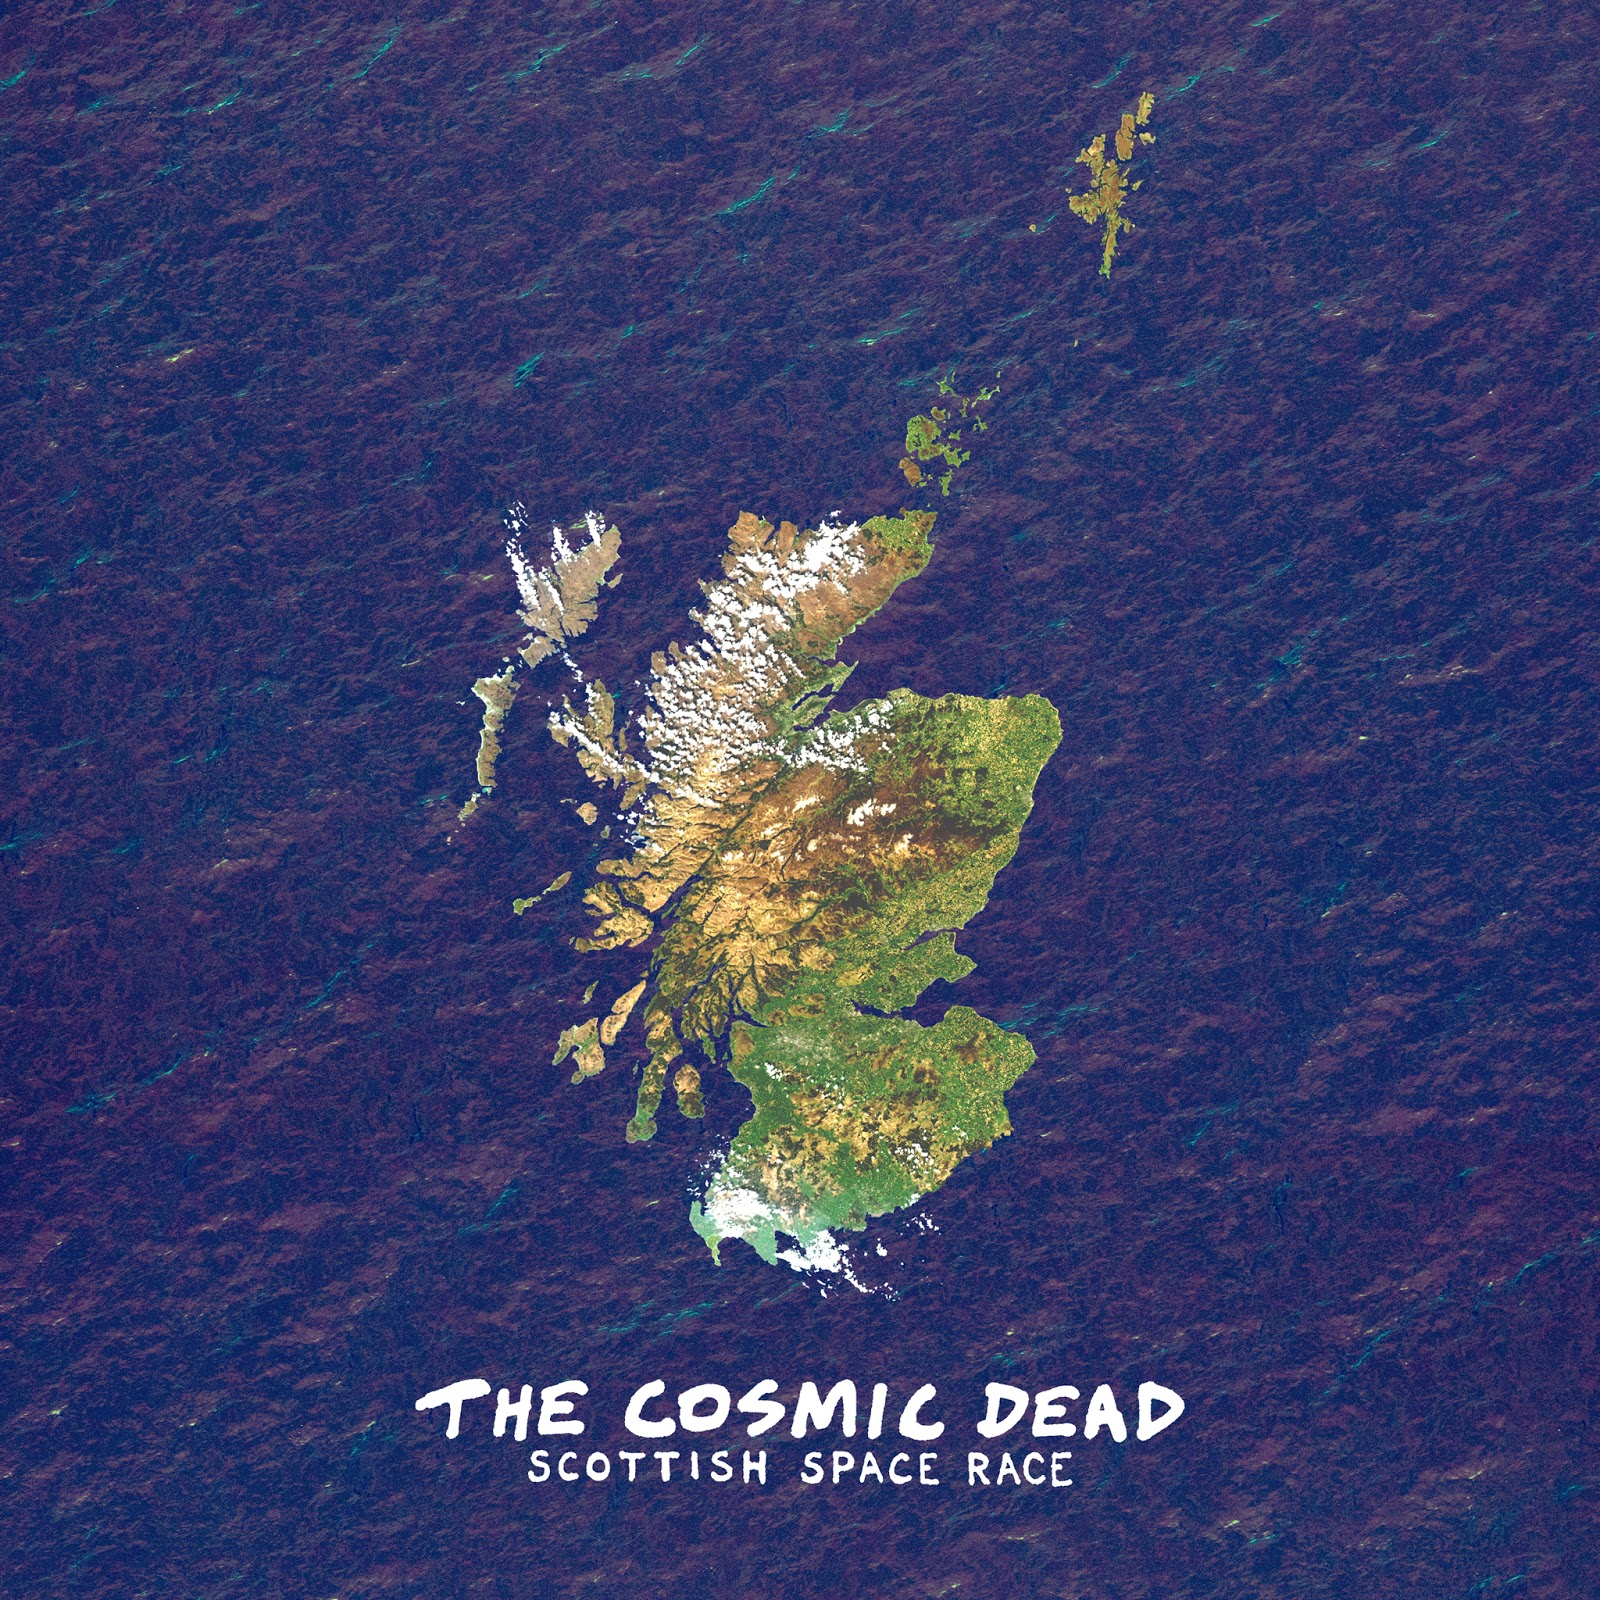 The Cosmic Dead Scottish Space Race